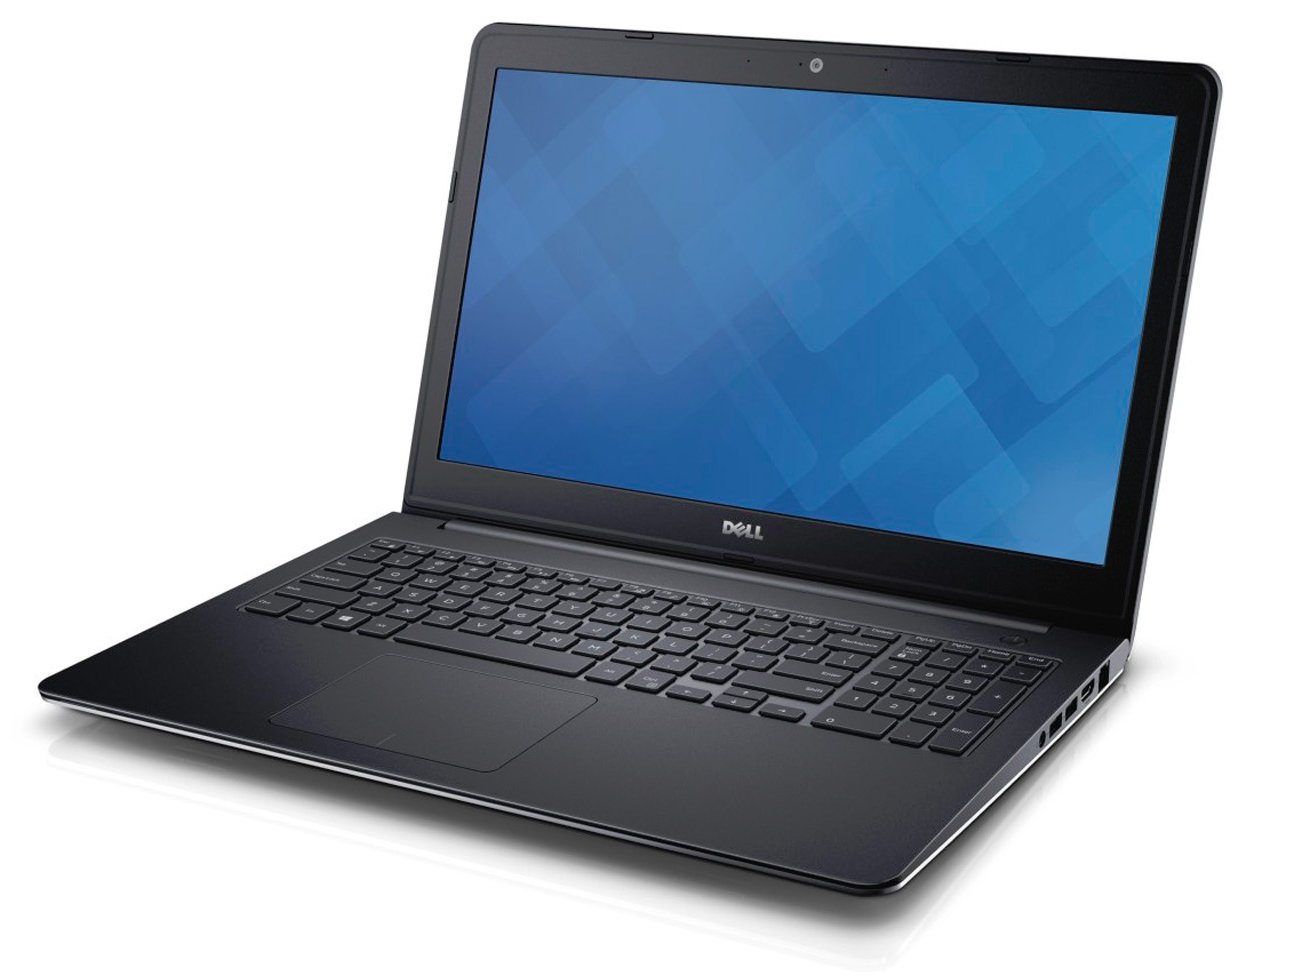 Dell Touchpad Driver For Windows 8.1 64 Bit Free Download